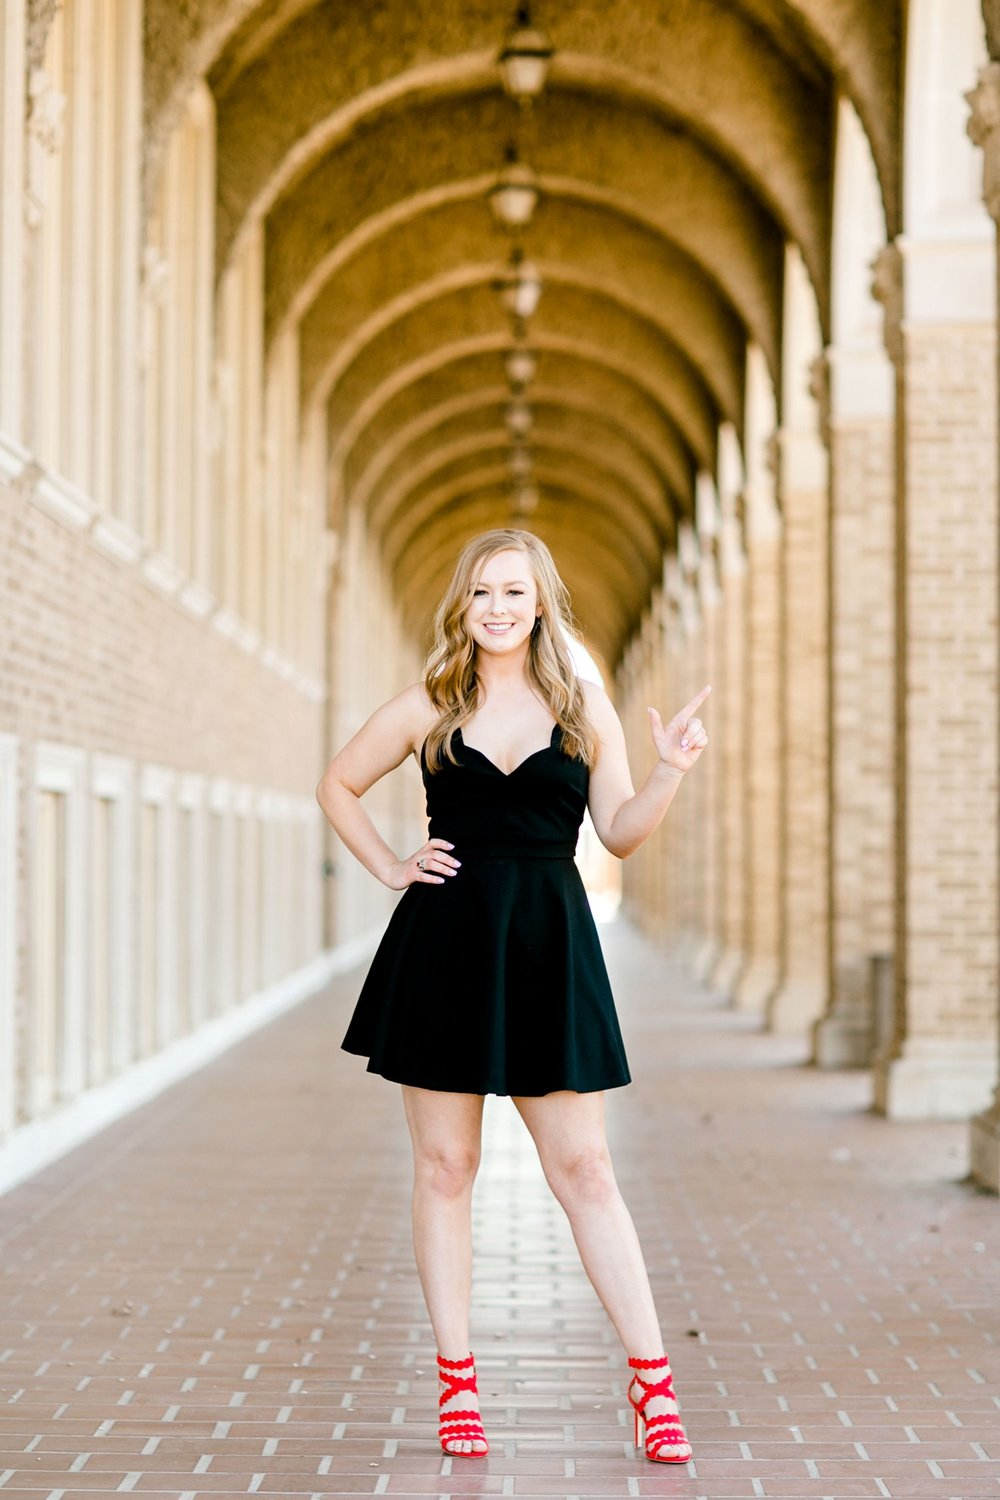 Danyelle-Huffaker-texas-tech-university-lubbock-senior-photographer-0003.jpg